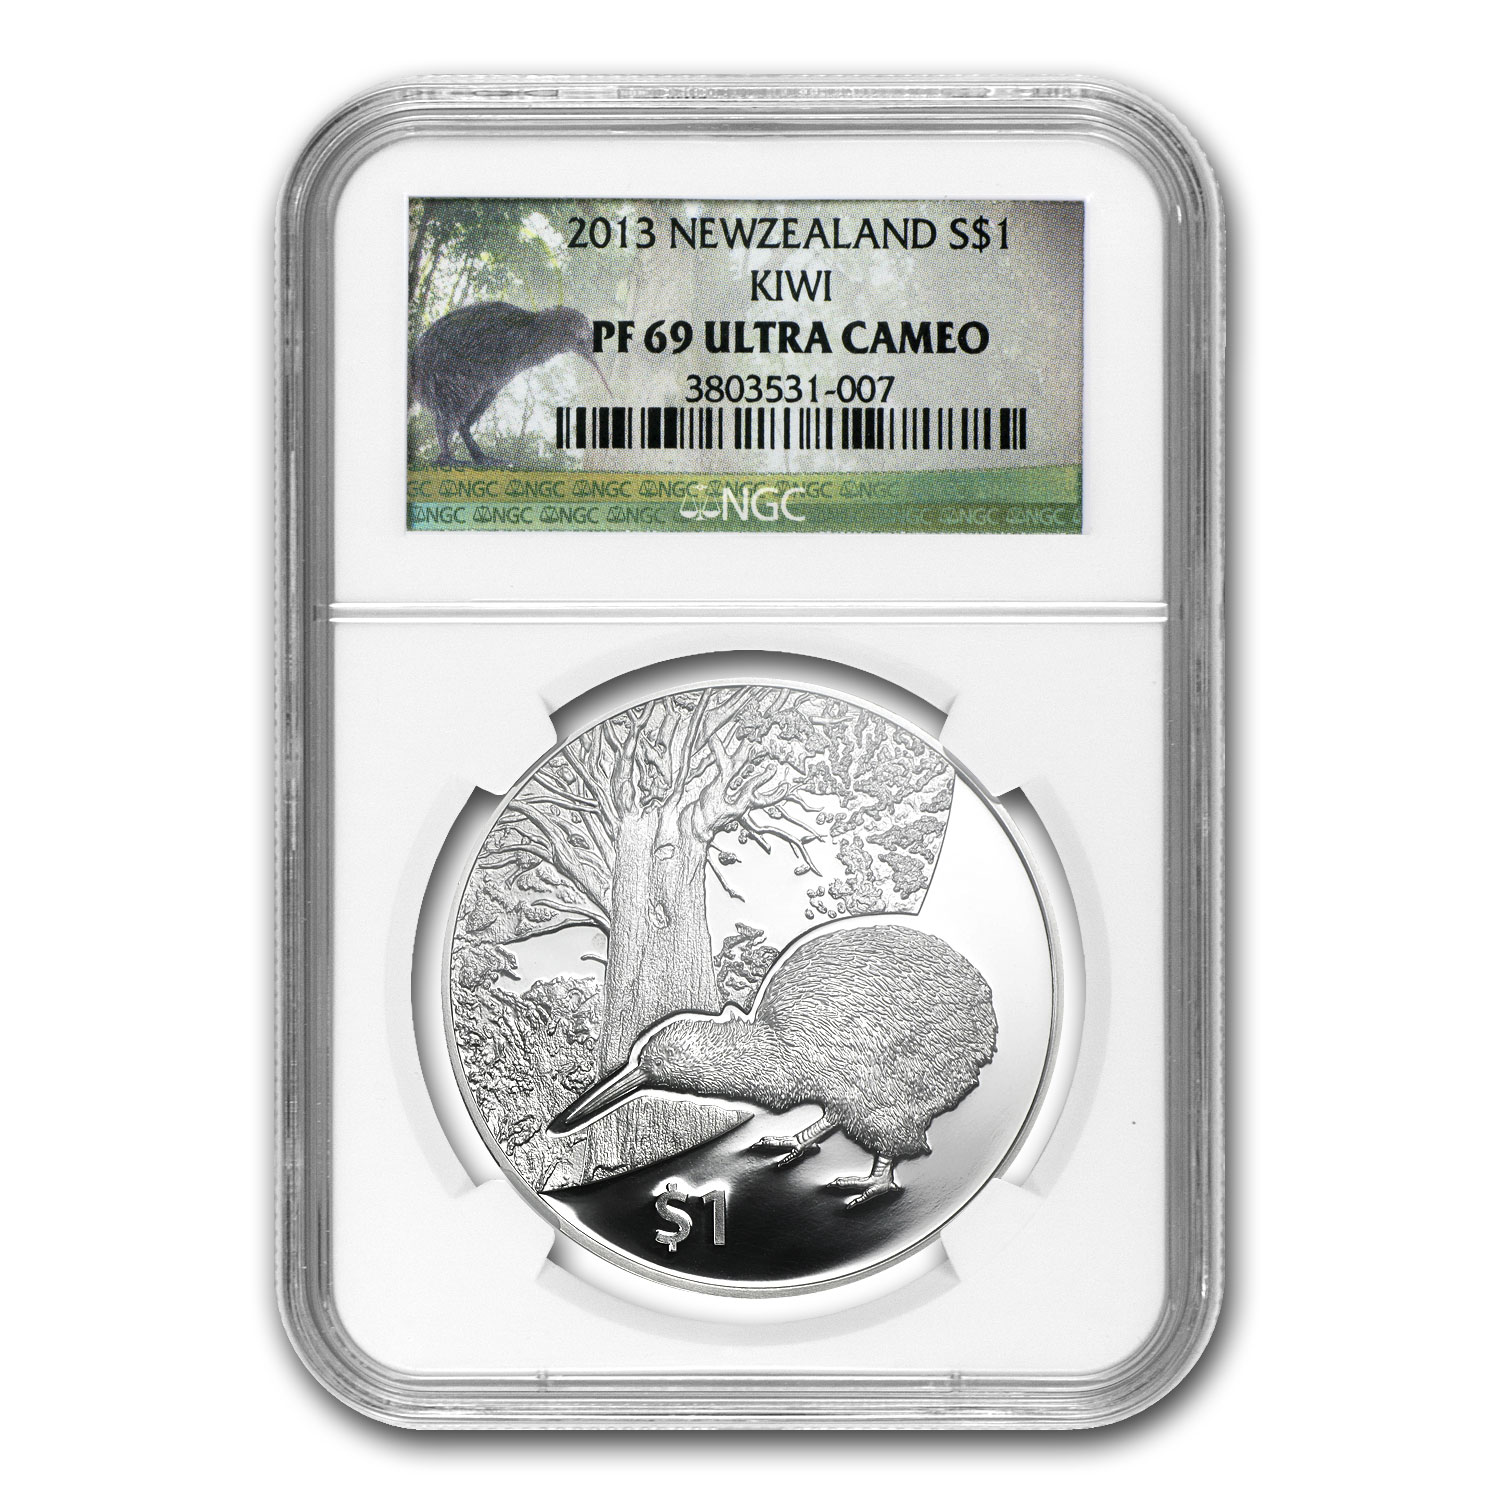 2013 New Zealand 1 oz Silver Treasures $1 Kiwi PF-69 NGC